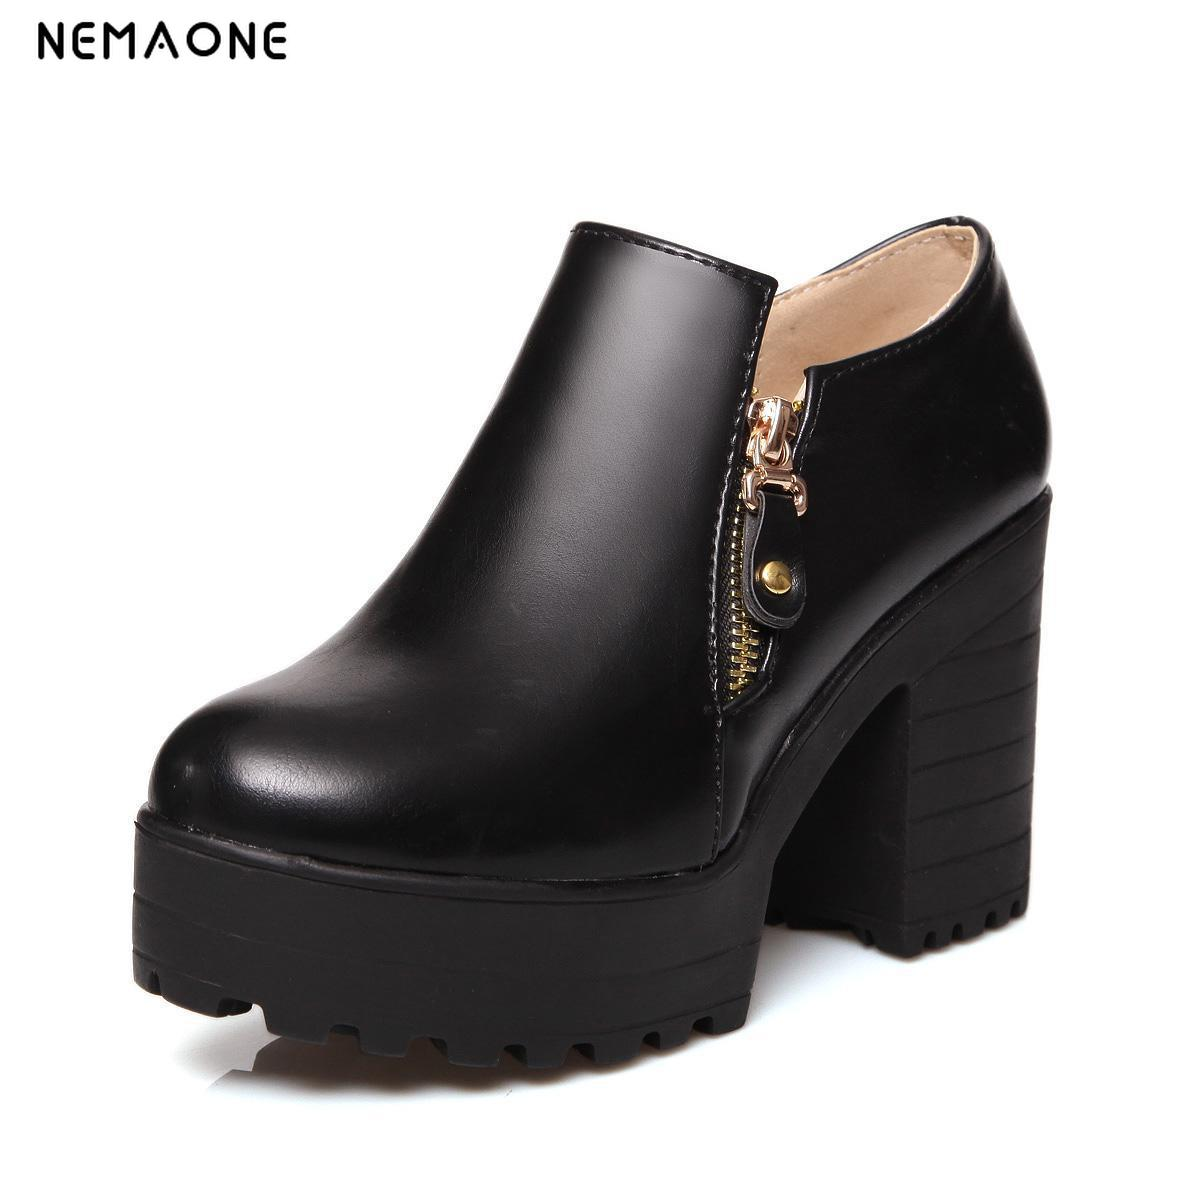 NEMAONE 2017 New fashion women shoes thick high heels platform shoes woman shoes spring autumn women pumps zipper ladies shoes 2017 elegant high heels fashion bowtie ladies pumps sexy spring autumn platform shoes woman black and blue women shoes hds72